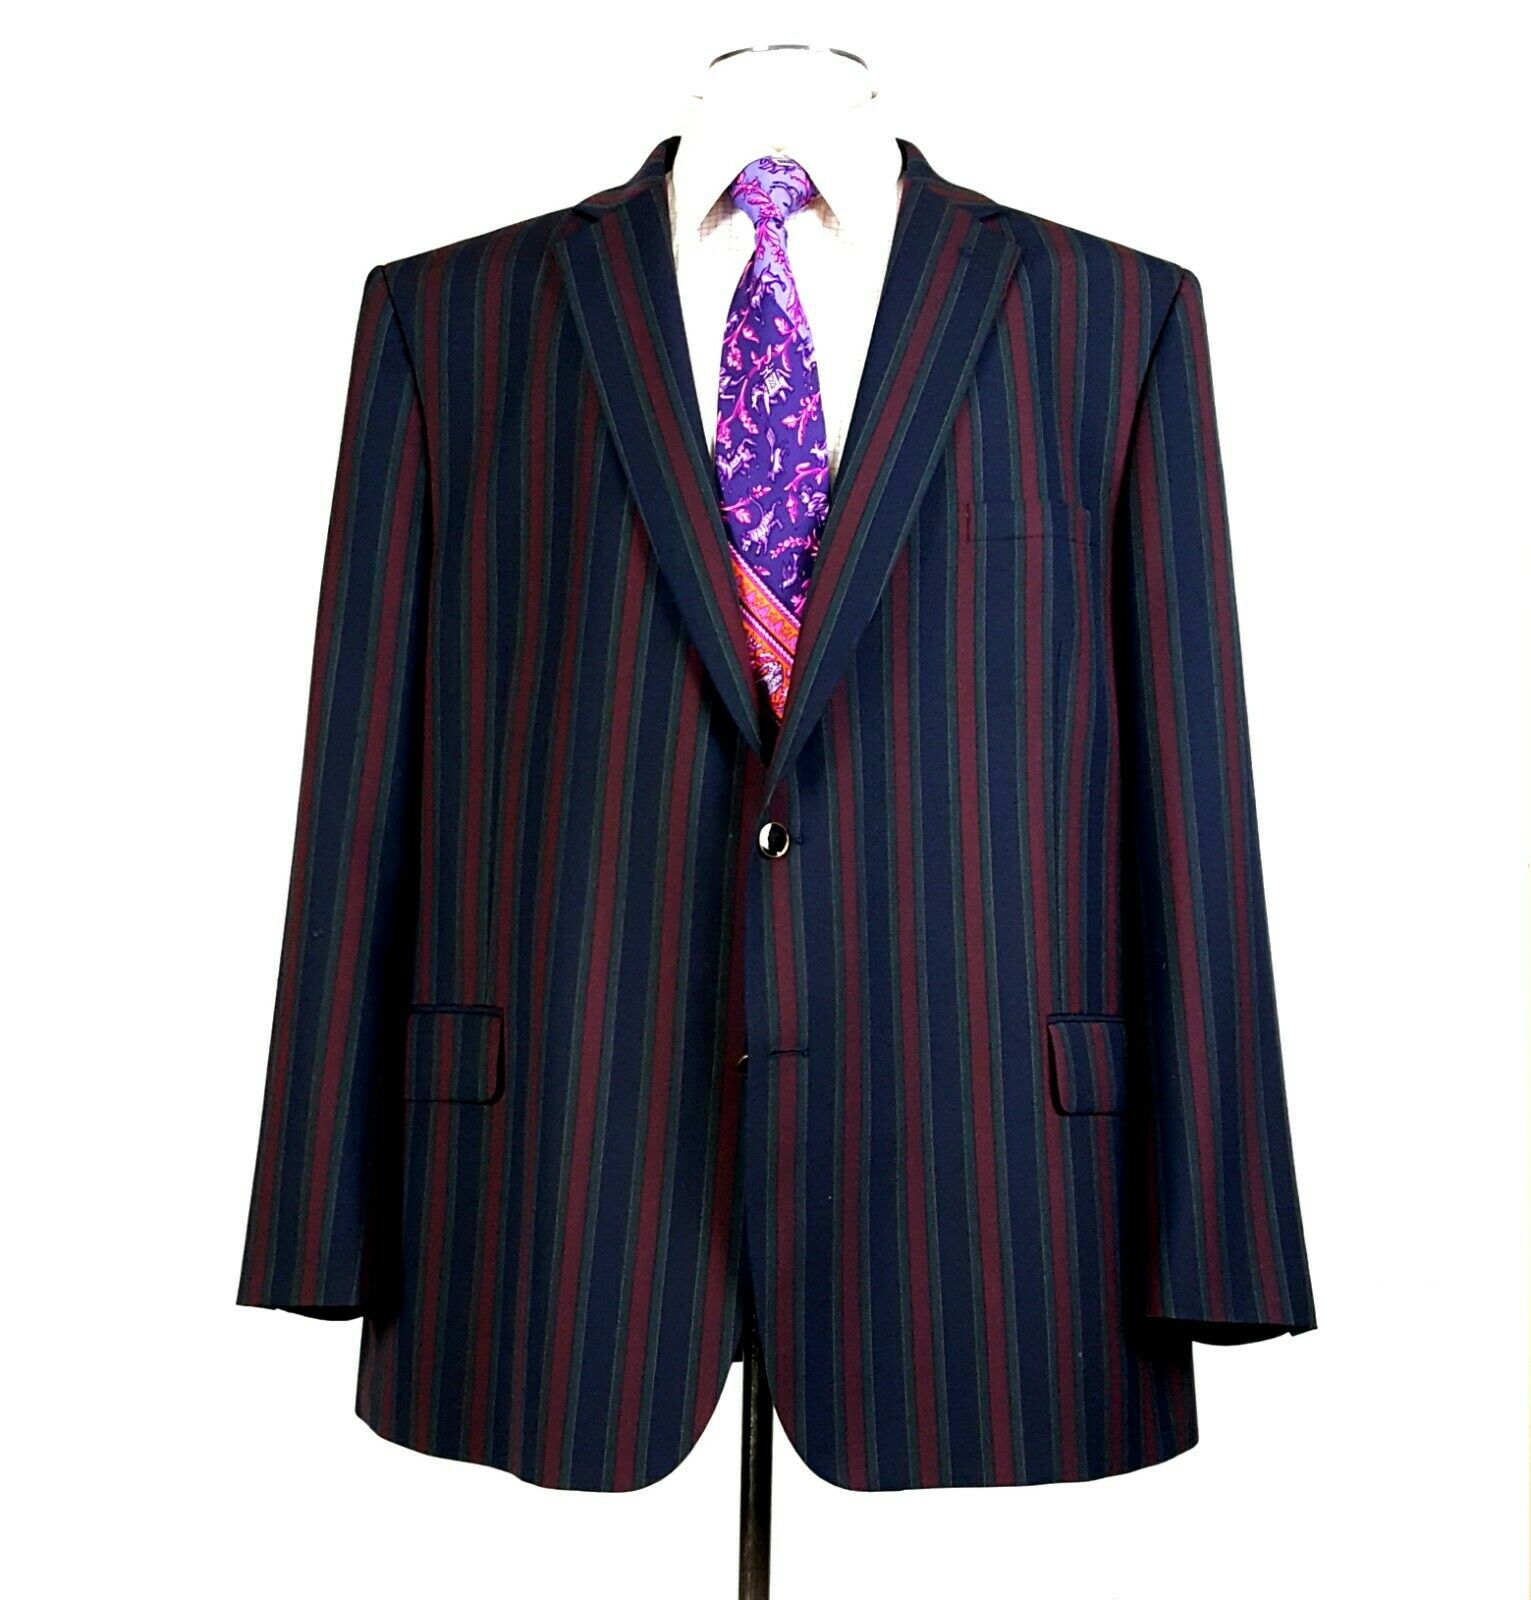 NEW Brook Taverner 50R Richmond Striped Boating Blazer Maroon Blau Grün